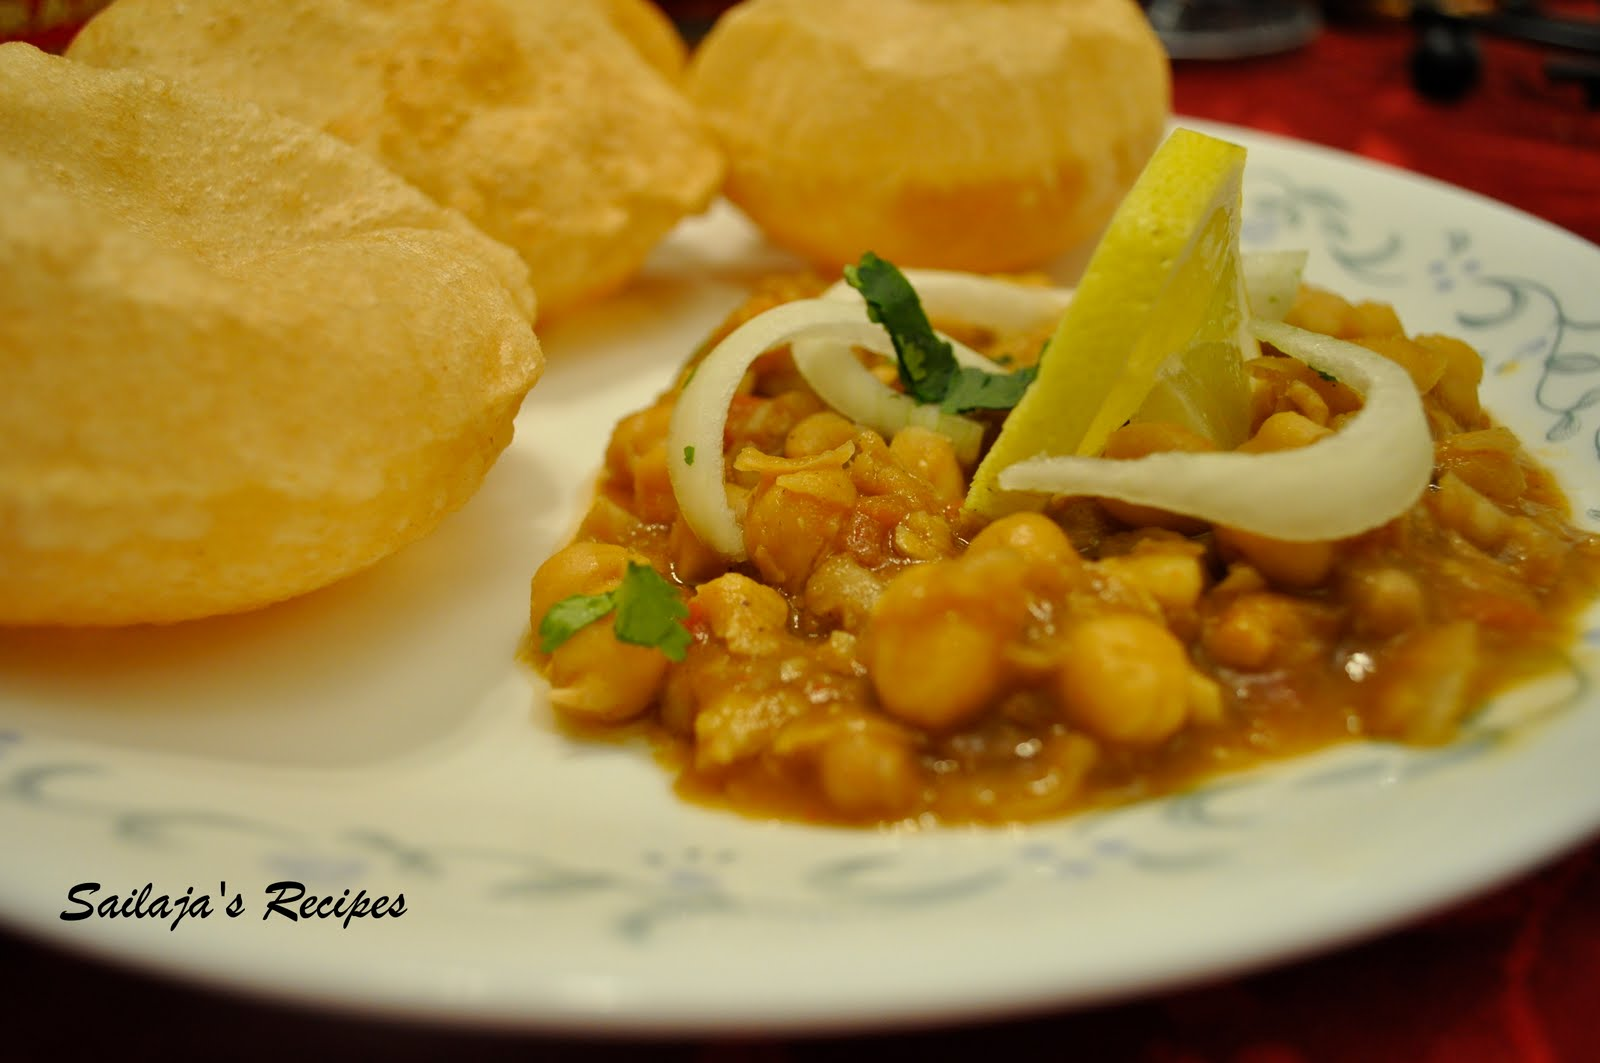 Sailaja's Recipes: Chole/ Chana Masala